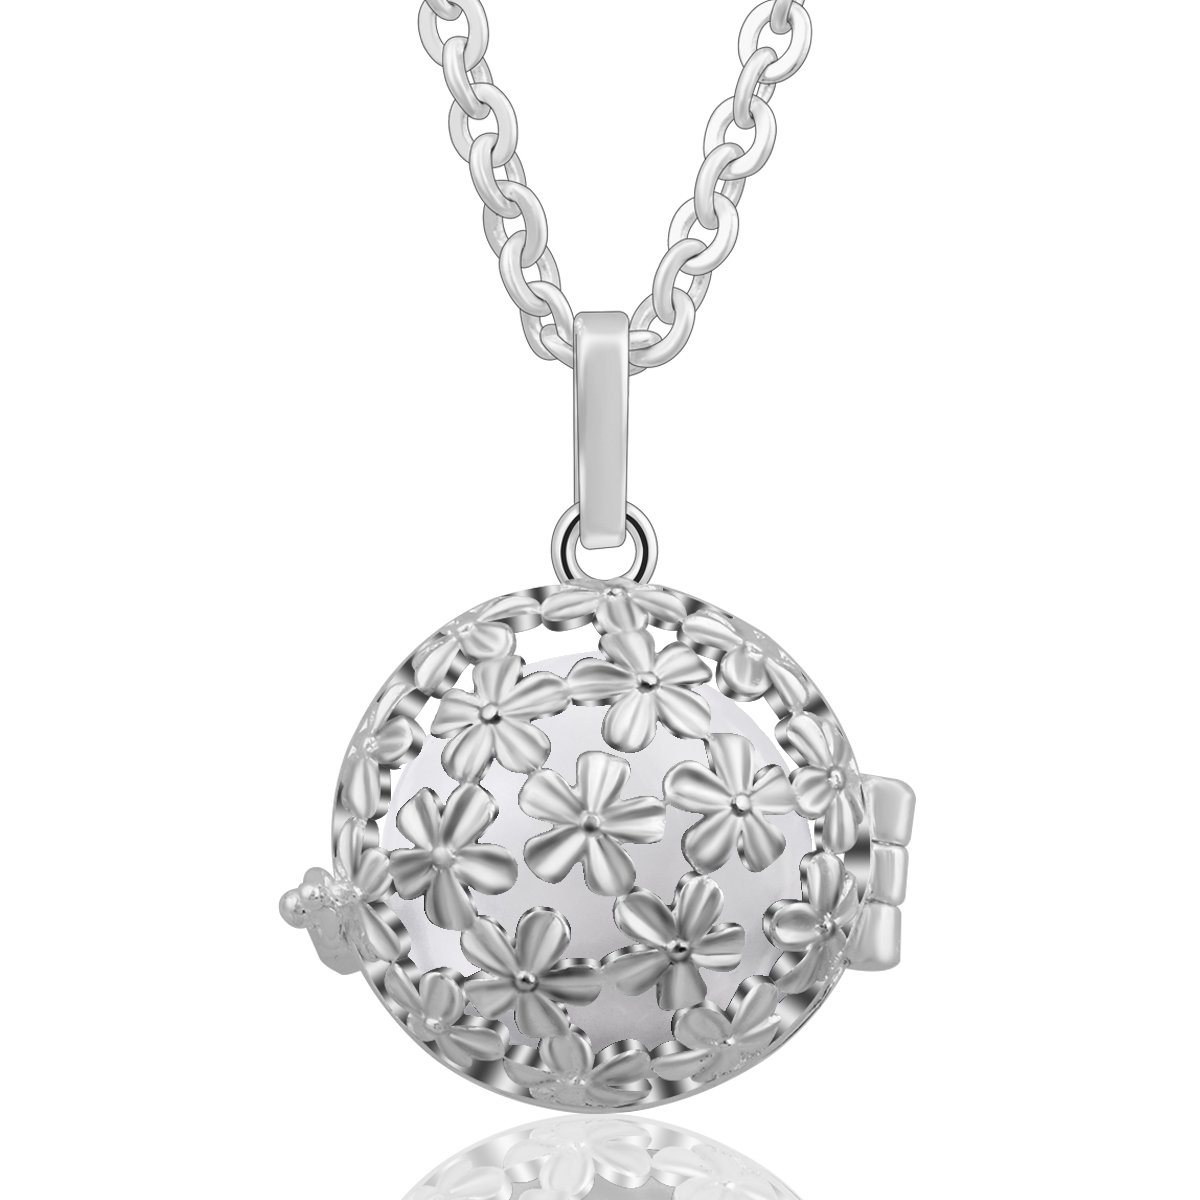 EUDORA Harmony Bola Summer Daisy Flower Angel Chime Caller Musical Ball Pandent Necklace 30'' Chain White